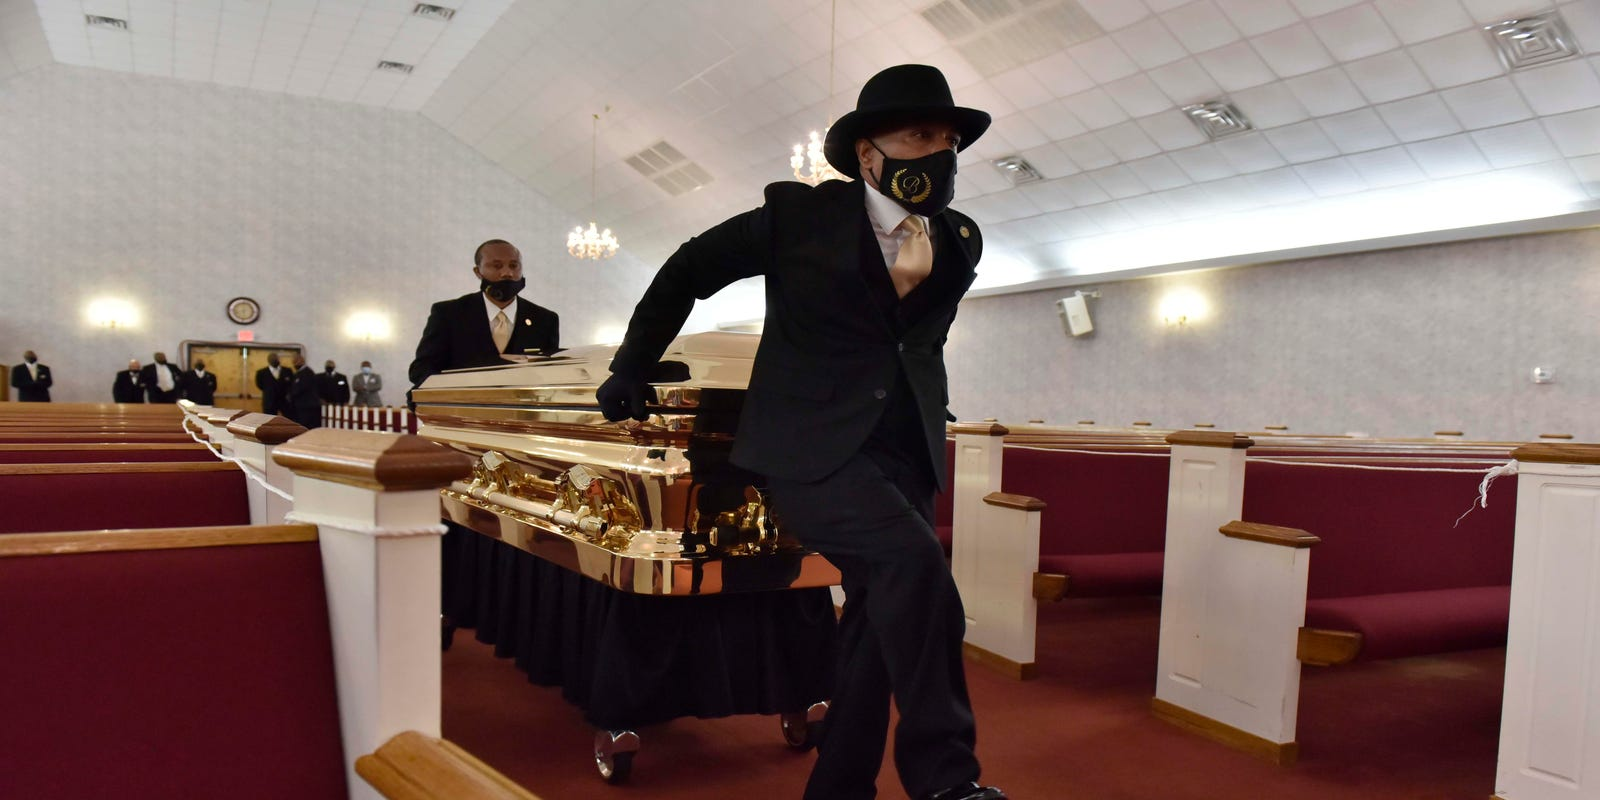 George Floyd is being mourned near Fayetteville, North Carolina